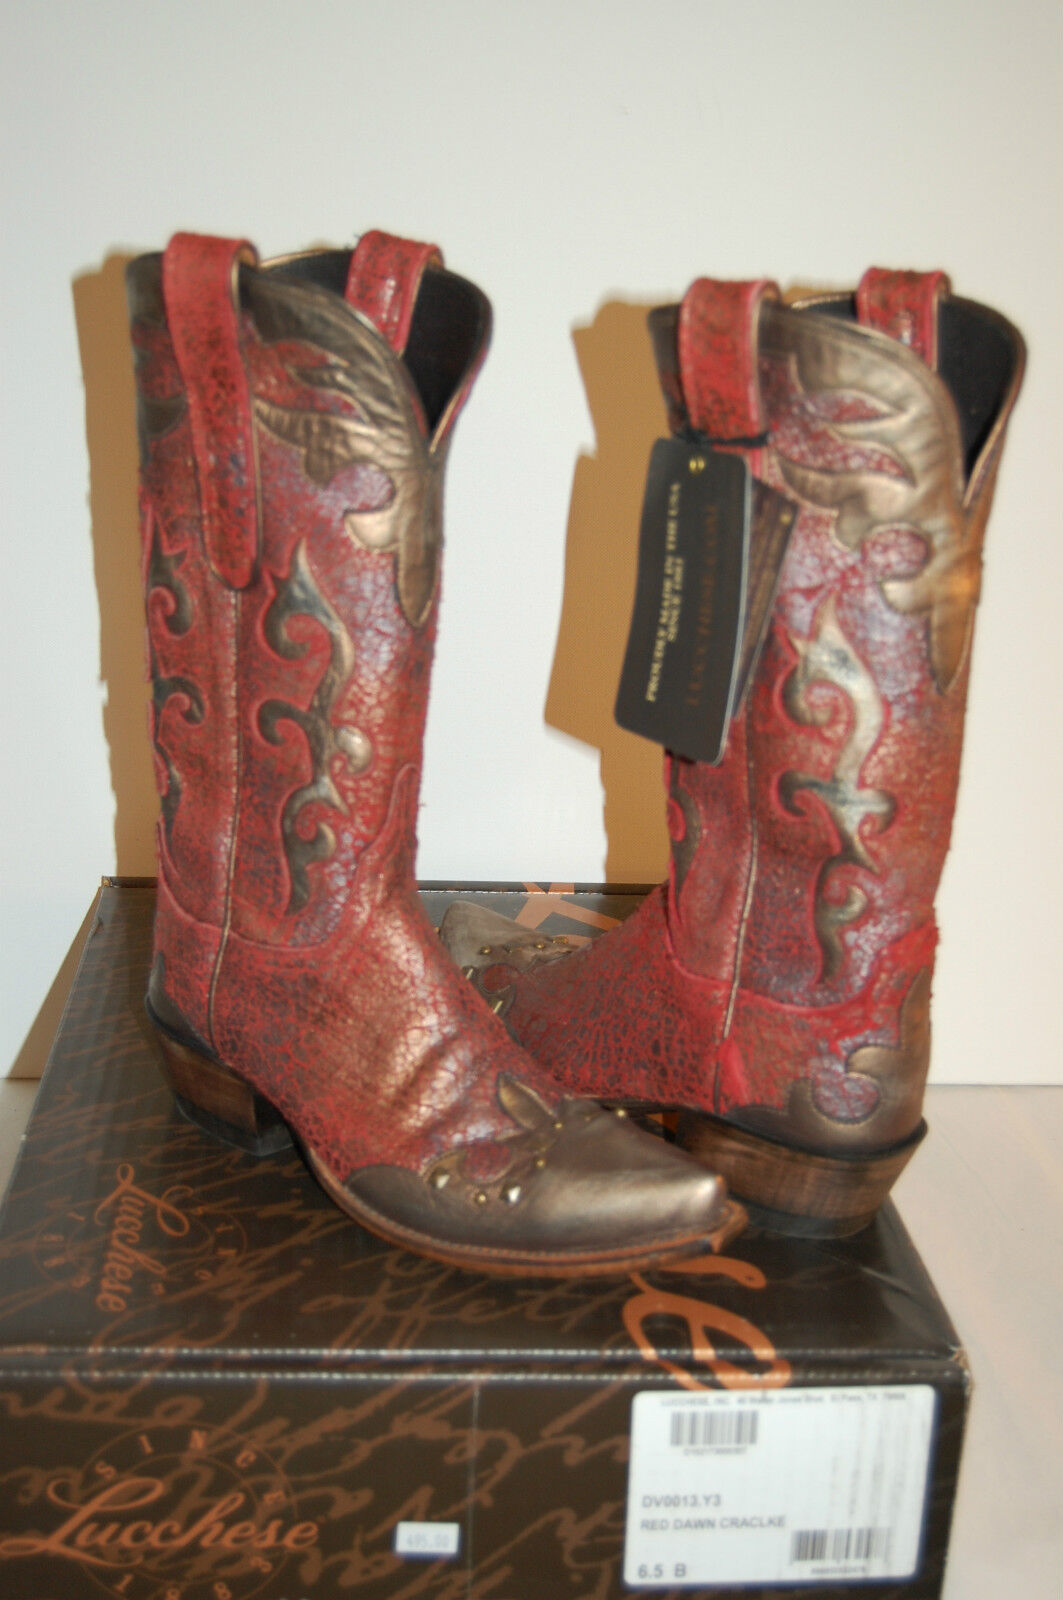 New $495 Lucchese Red Dawn Crackle Cowboy Boot Leather Red Gold 6.5 B Western